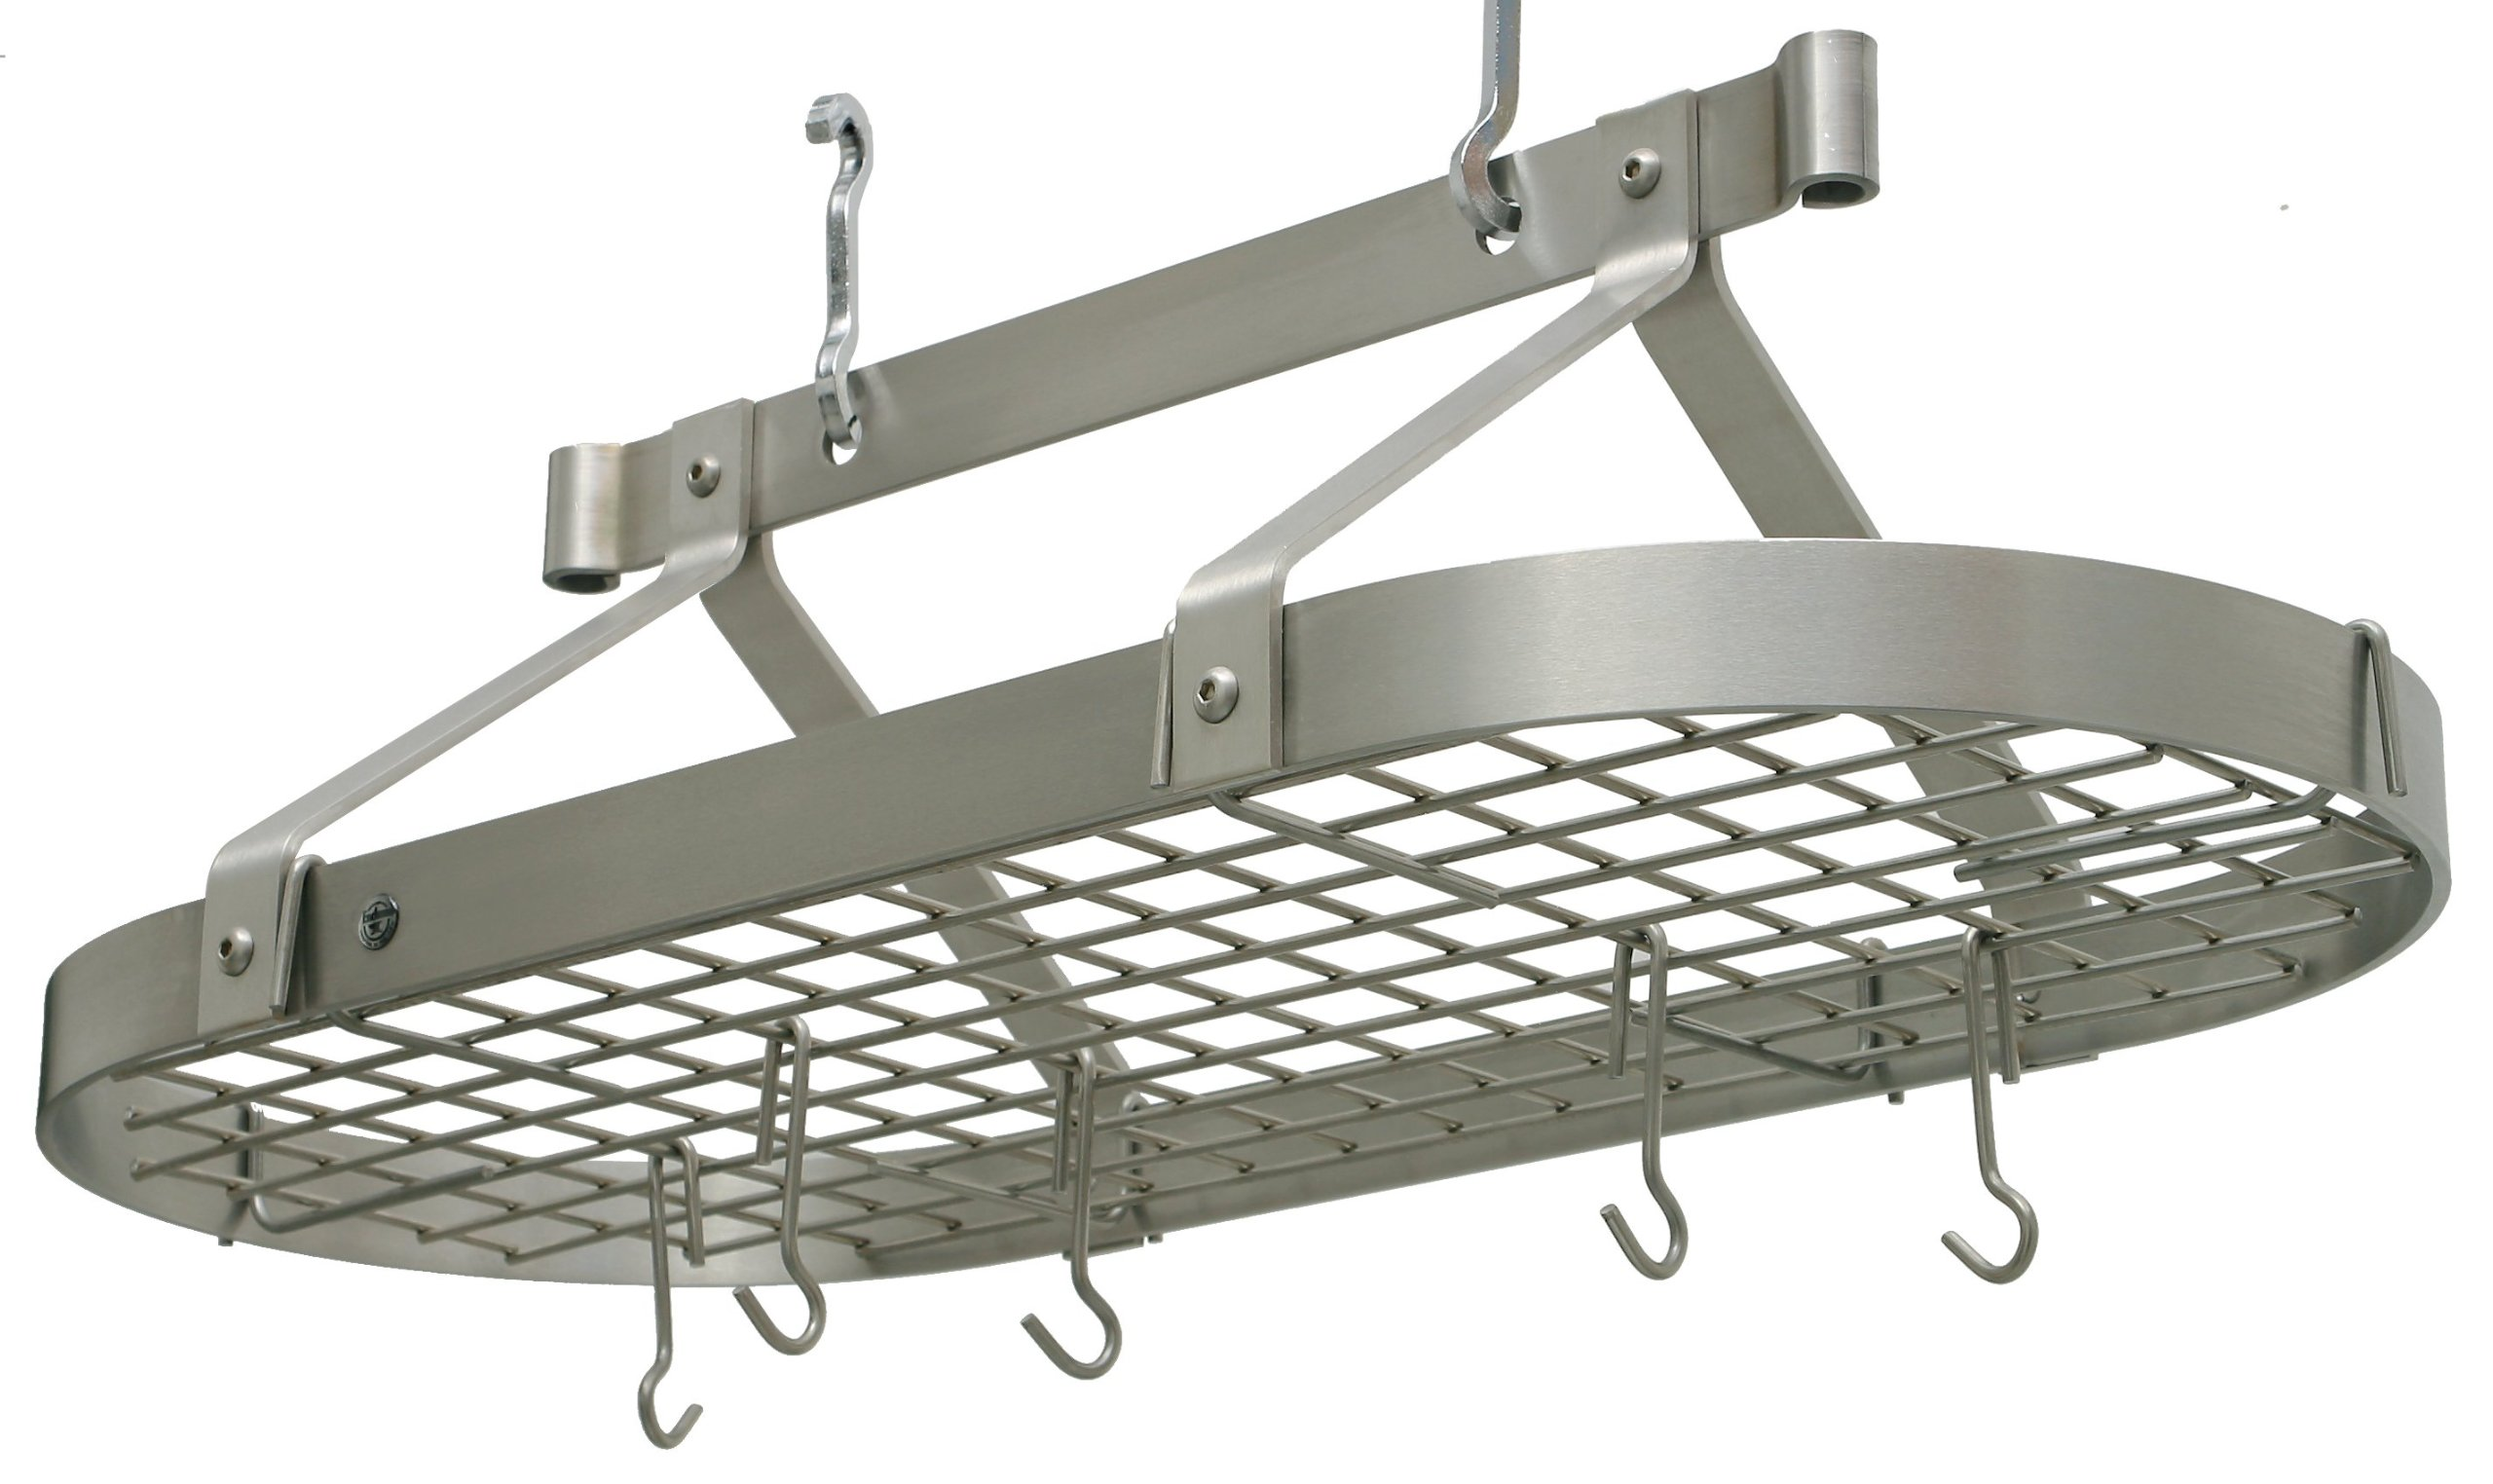 Enclume Premier 3-Foot Oval Ceiling Pot Rack, Stainless Steel